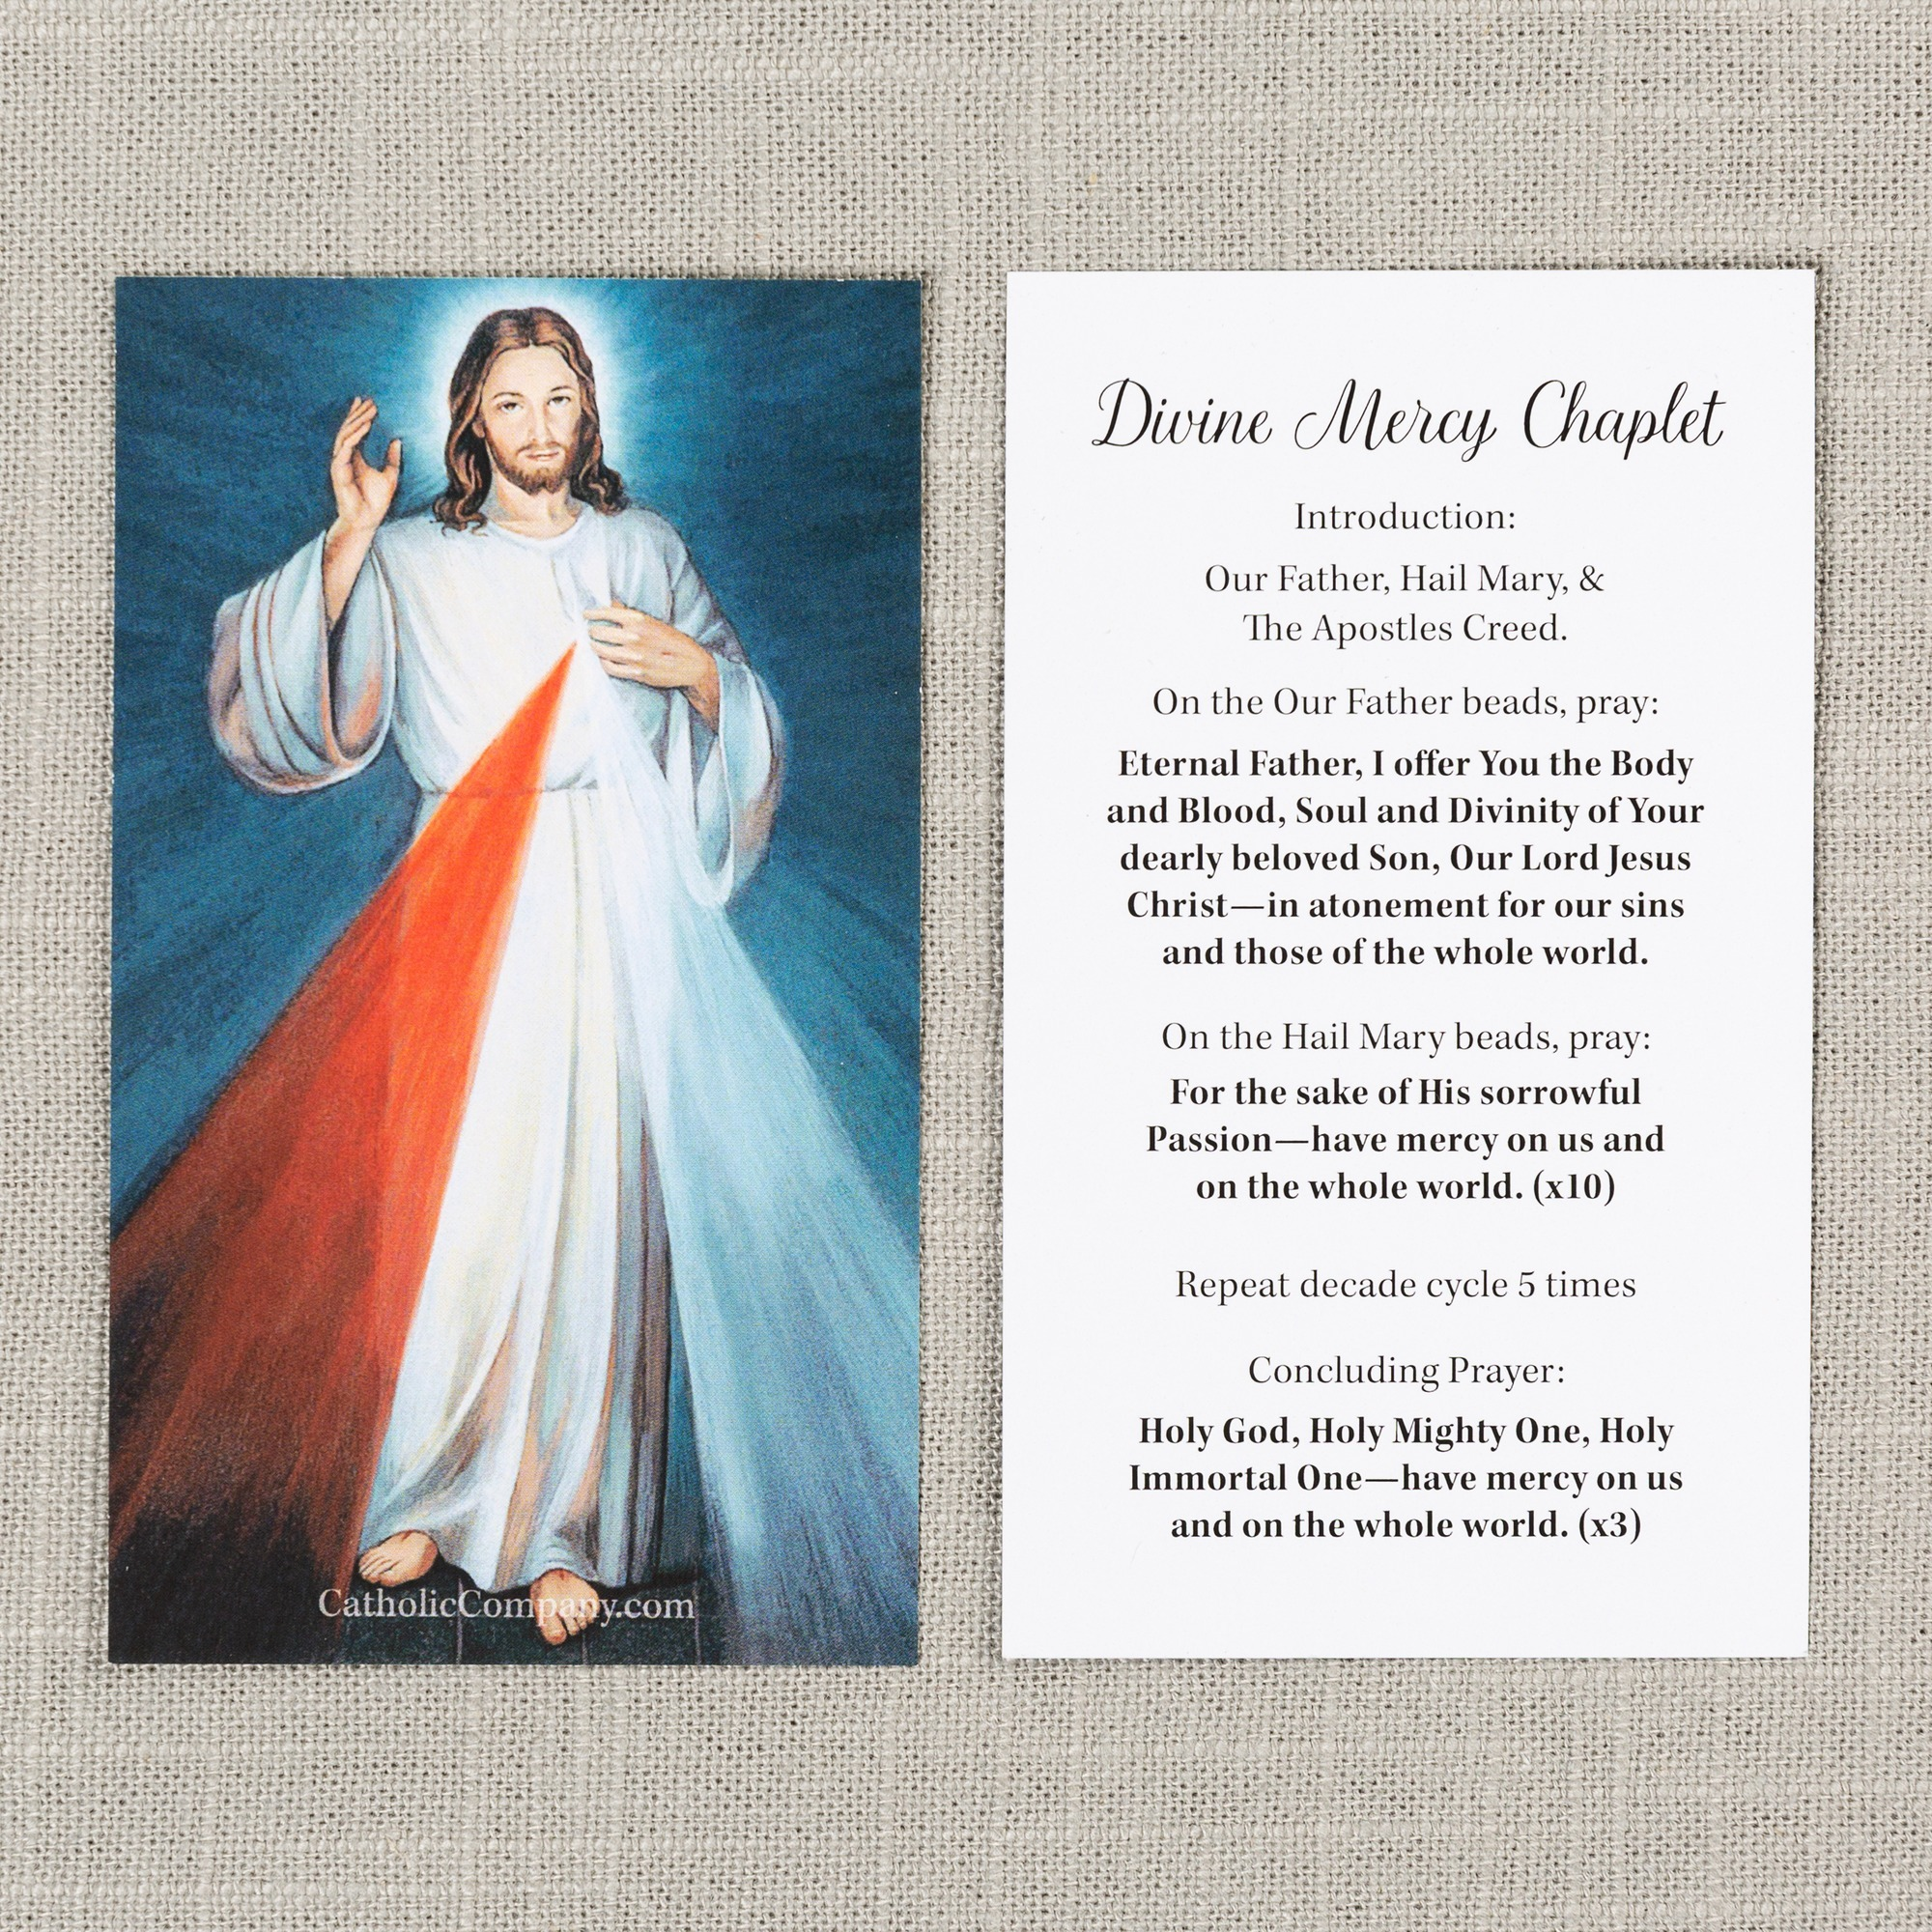 photo about Divine Mercy Chaplet Printable named Divine Mercy Impression and Chaplet Prayer Card